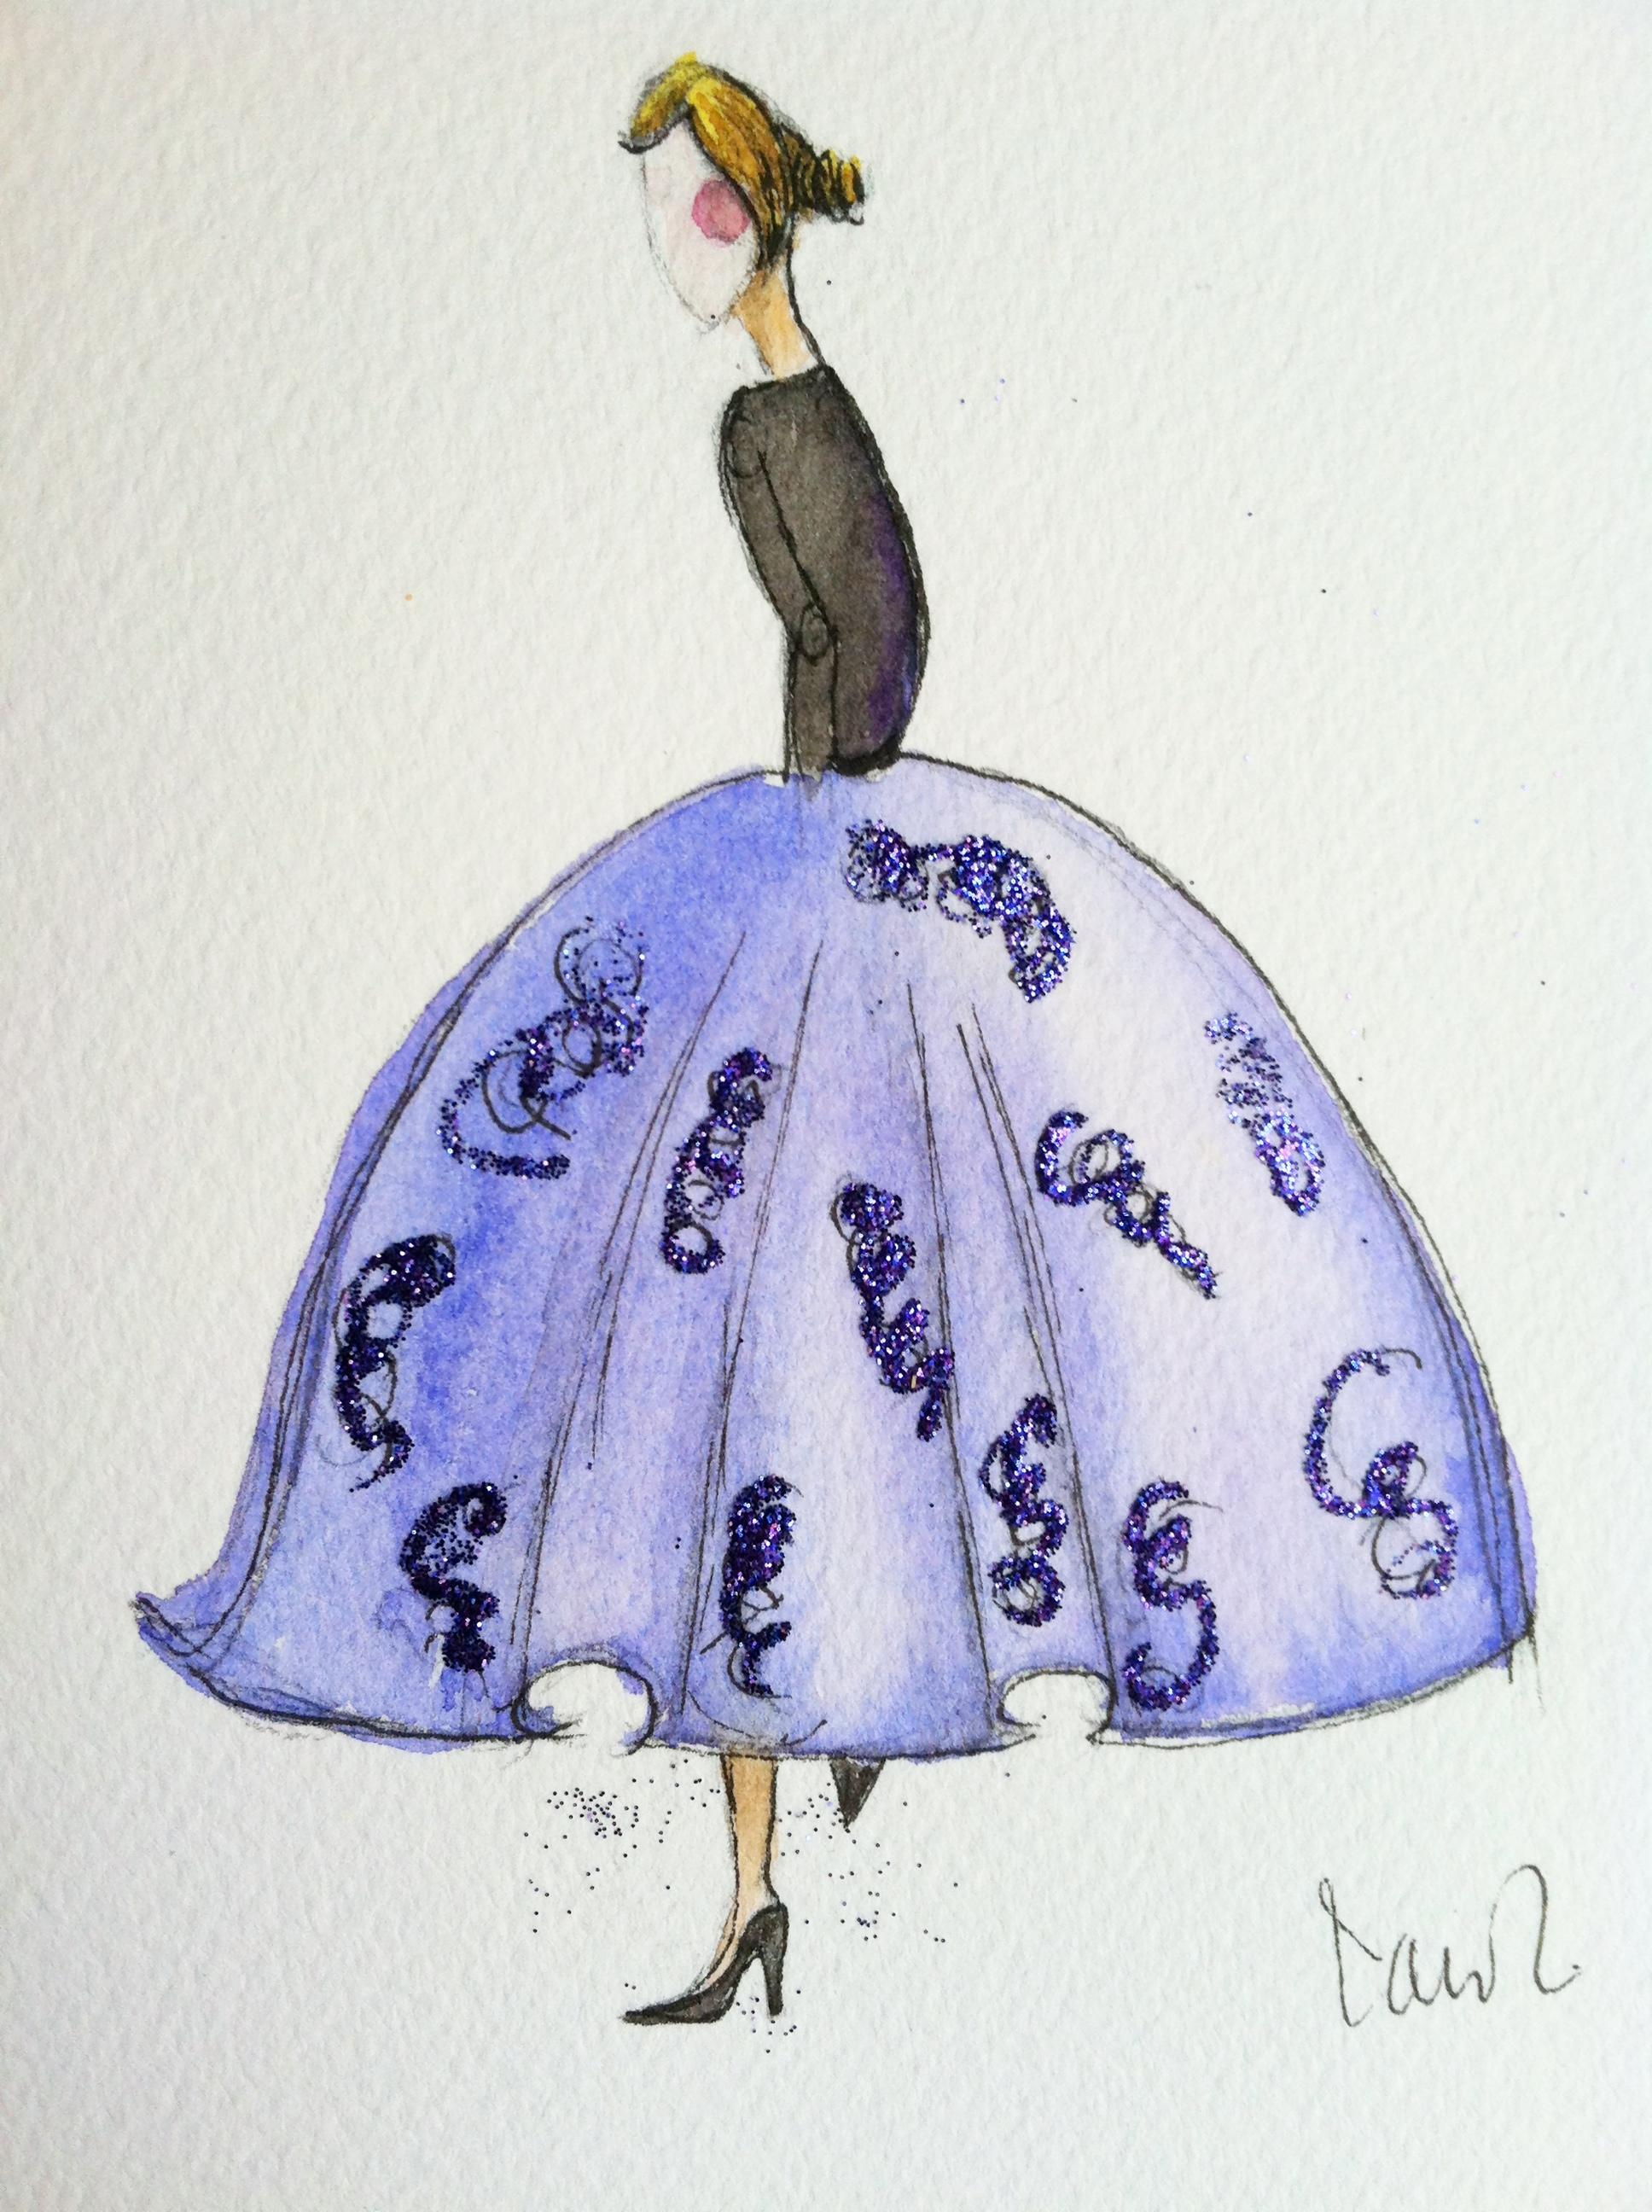 WATERCOLOR-Isn't she lovely - image 1 - student project